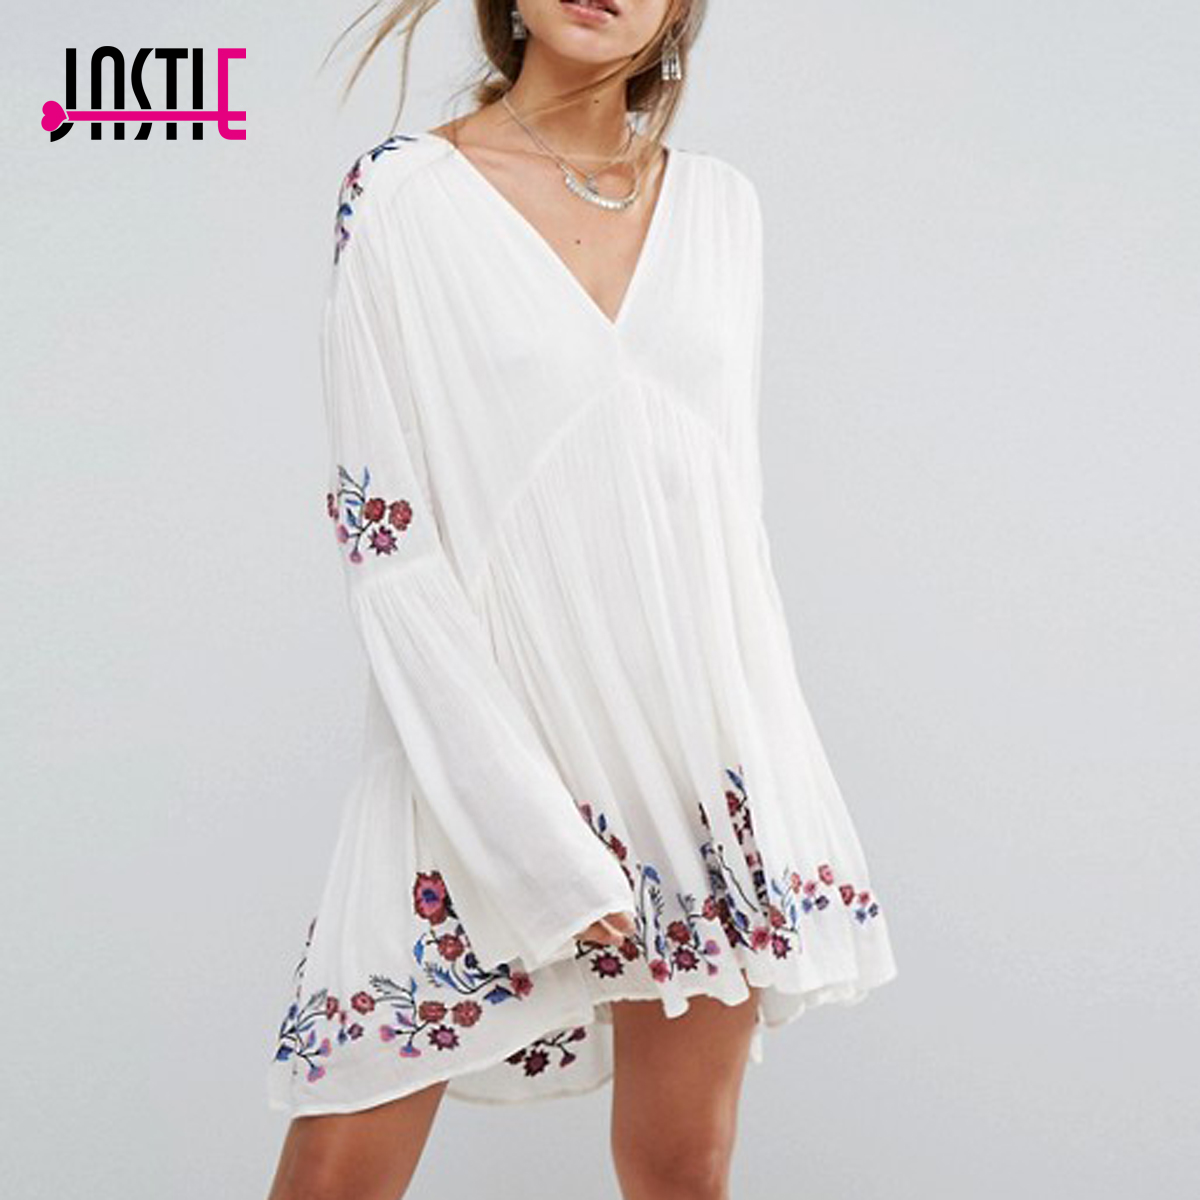 Jastie Oversize Spring Autumn Dress Floral Embroidered Mini Dress V Neck Long Sleeve Casual Beach Dresses